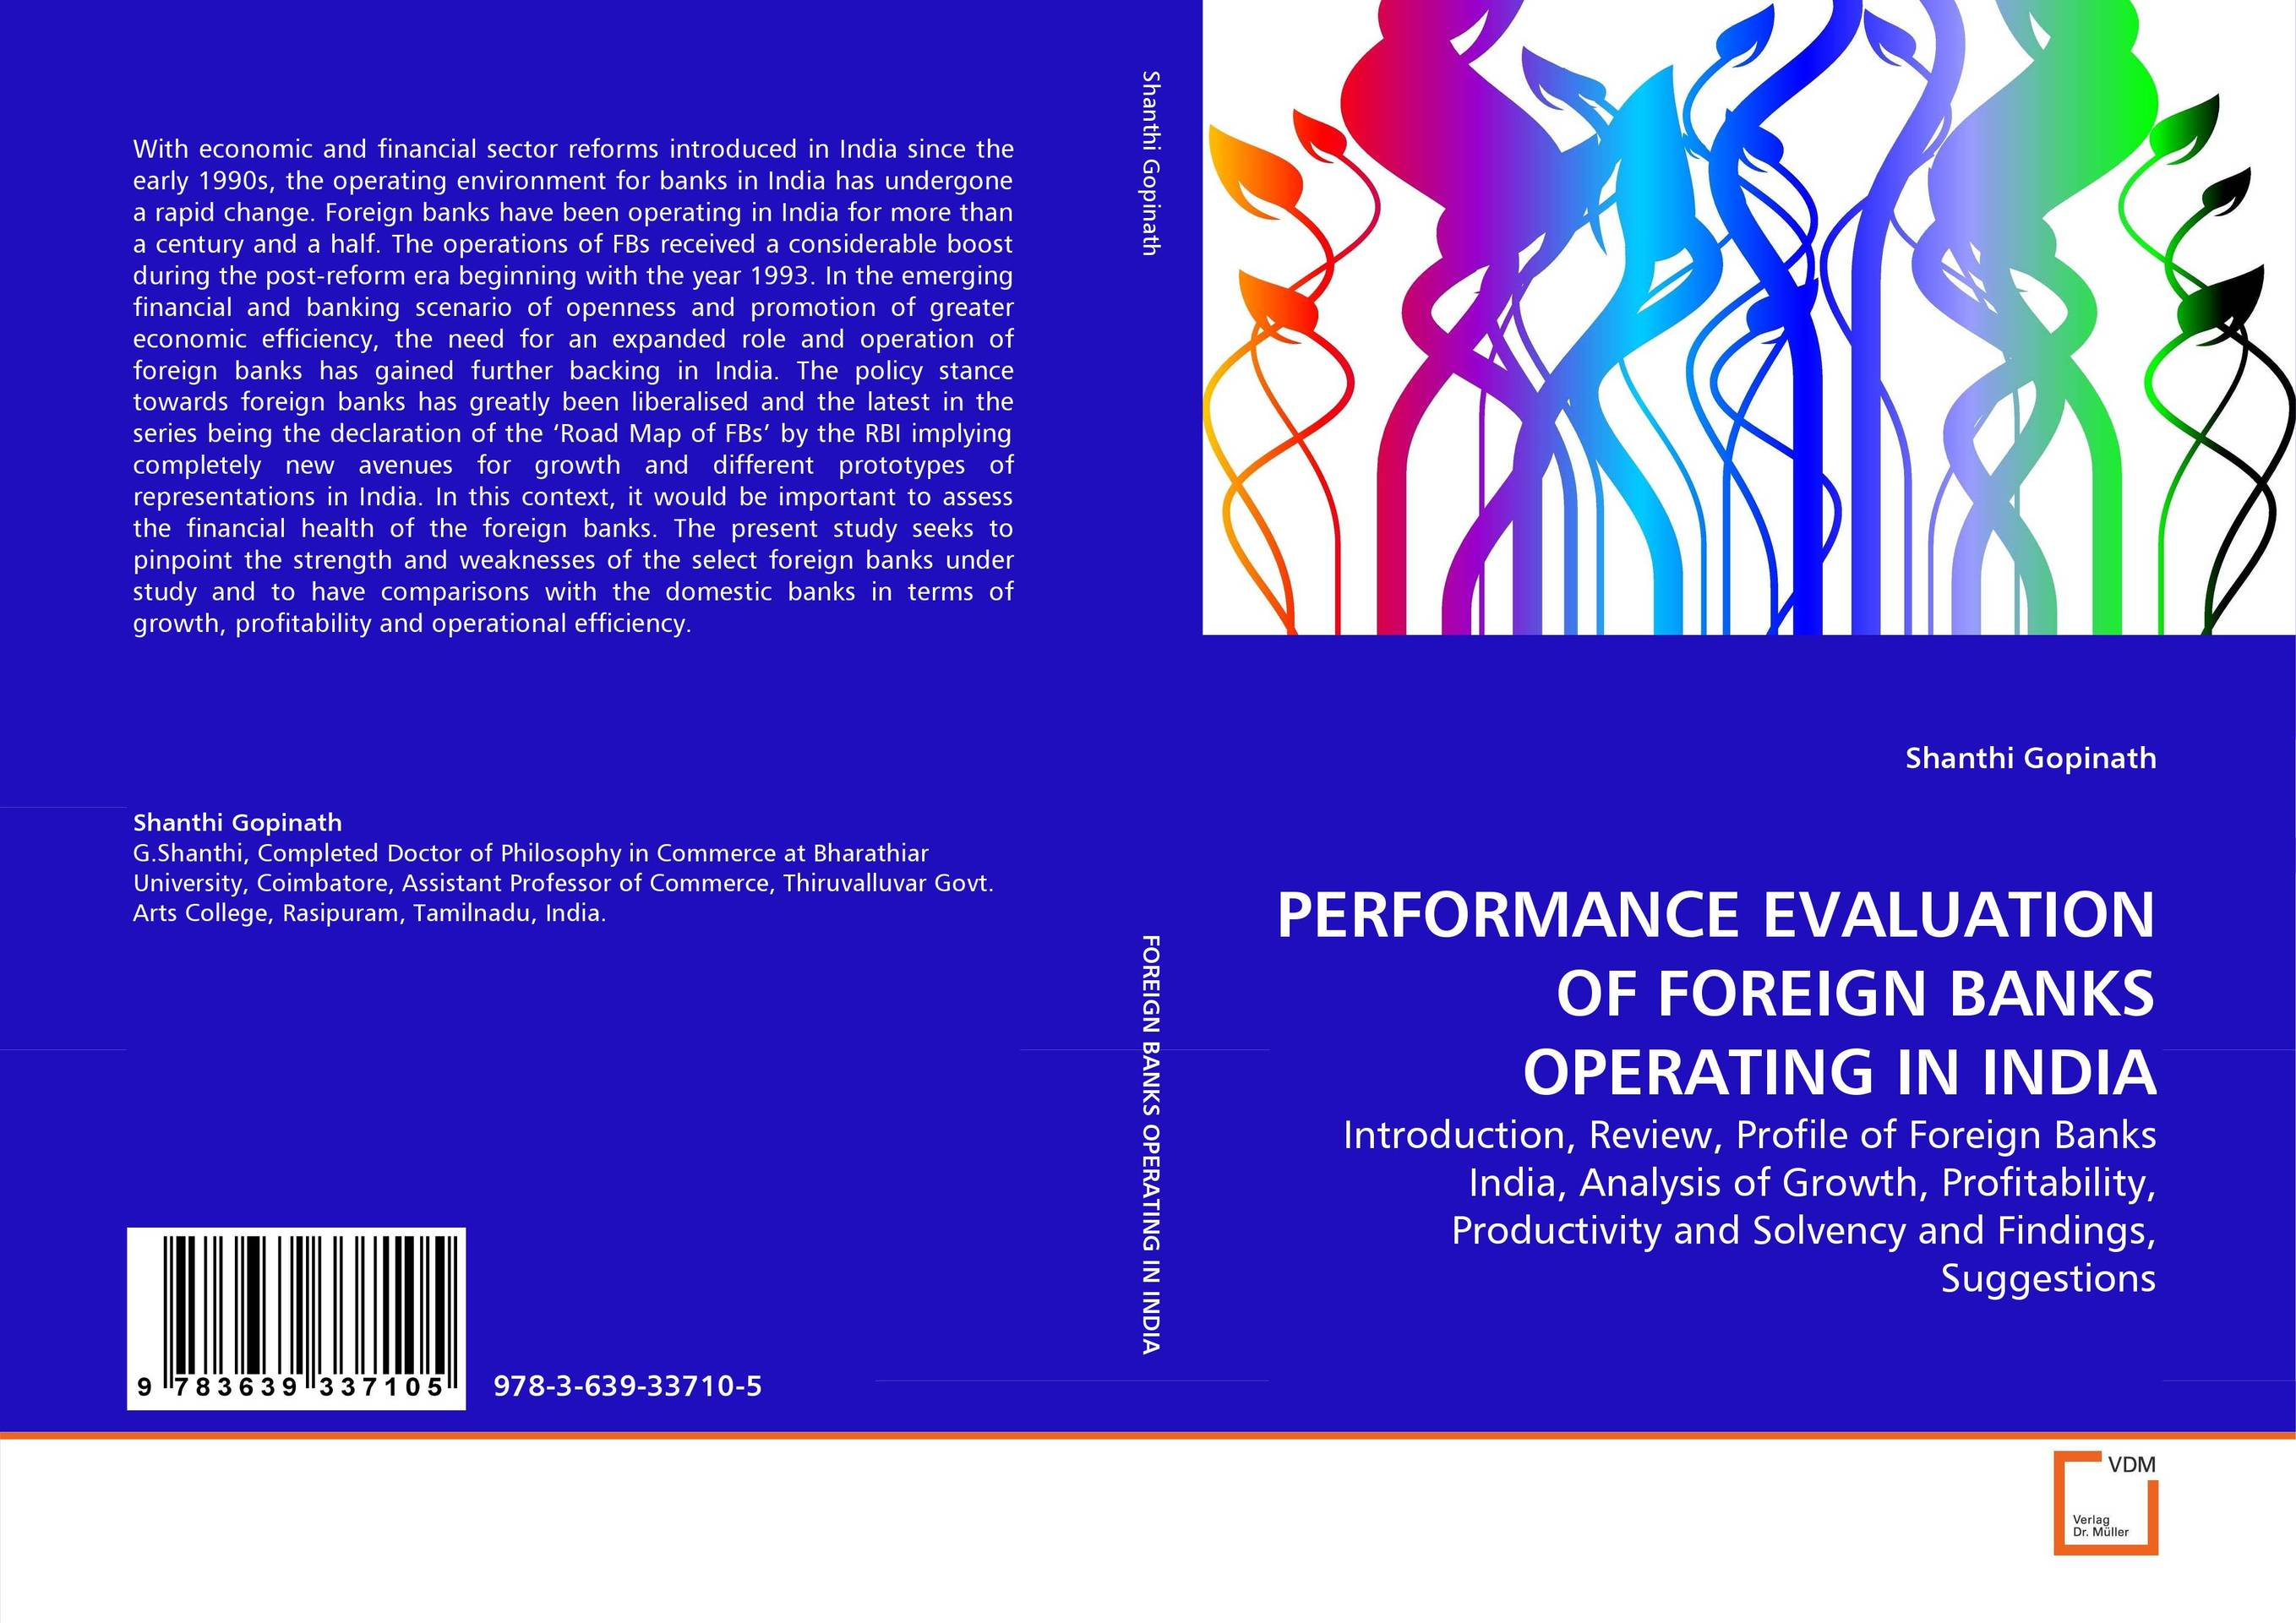 PERFORMANCE EVALUATION OF FOREIGN BANKS OPERATING IN INDIA empirical evaluation of operational efficiency of major ports in india